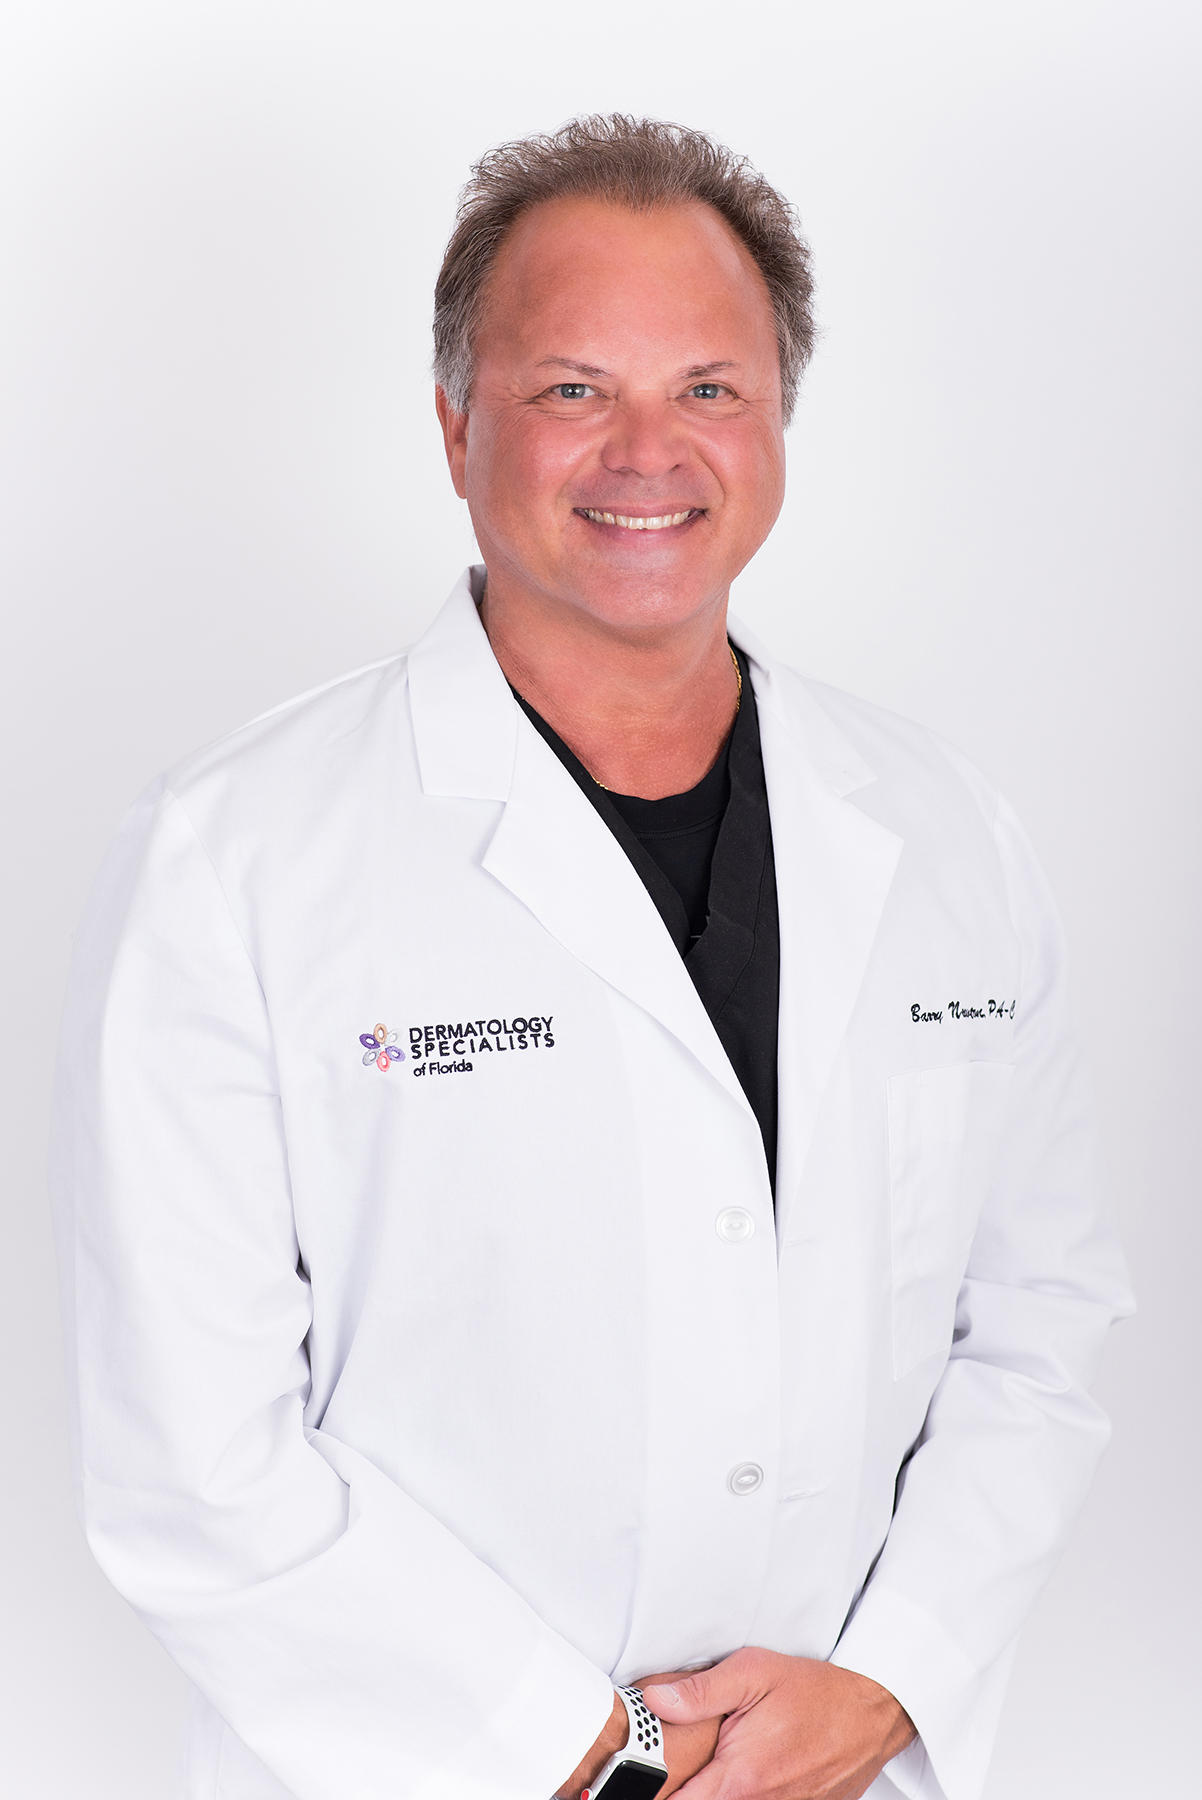 Dermatology Specialists of FL / Aqua Medical Spa image 3